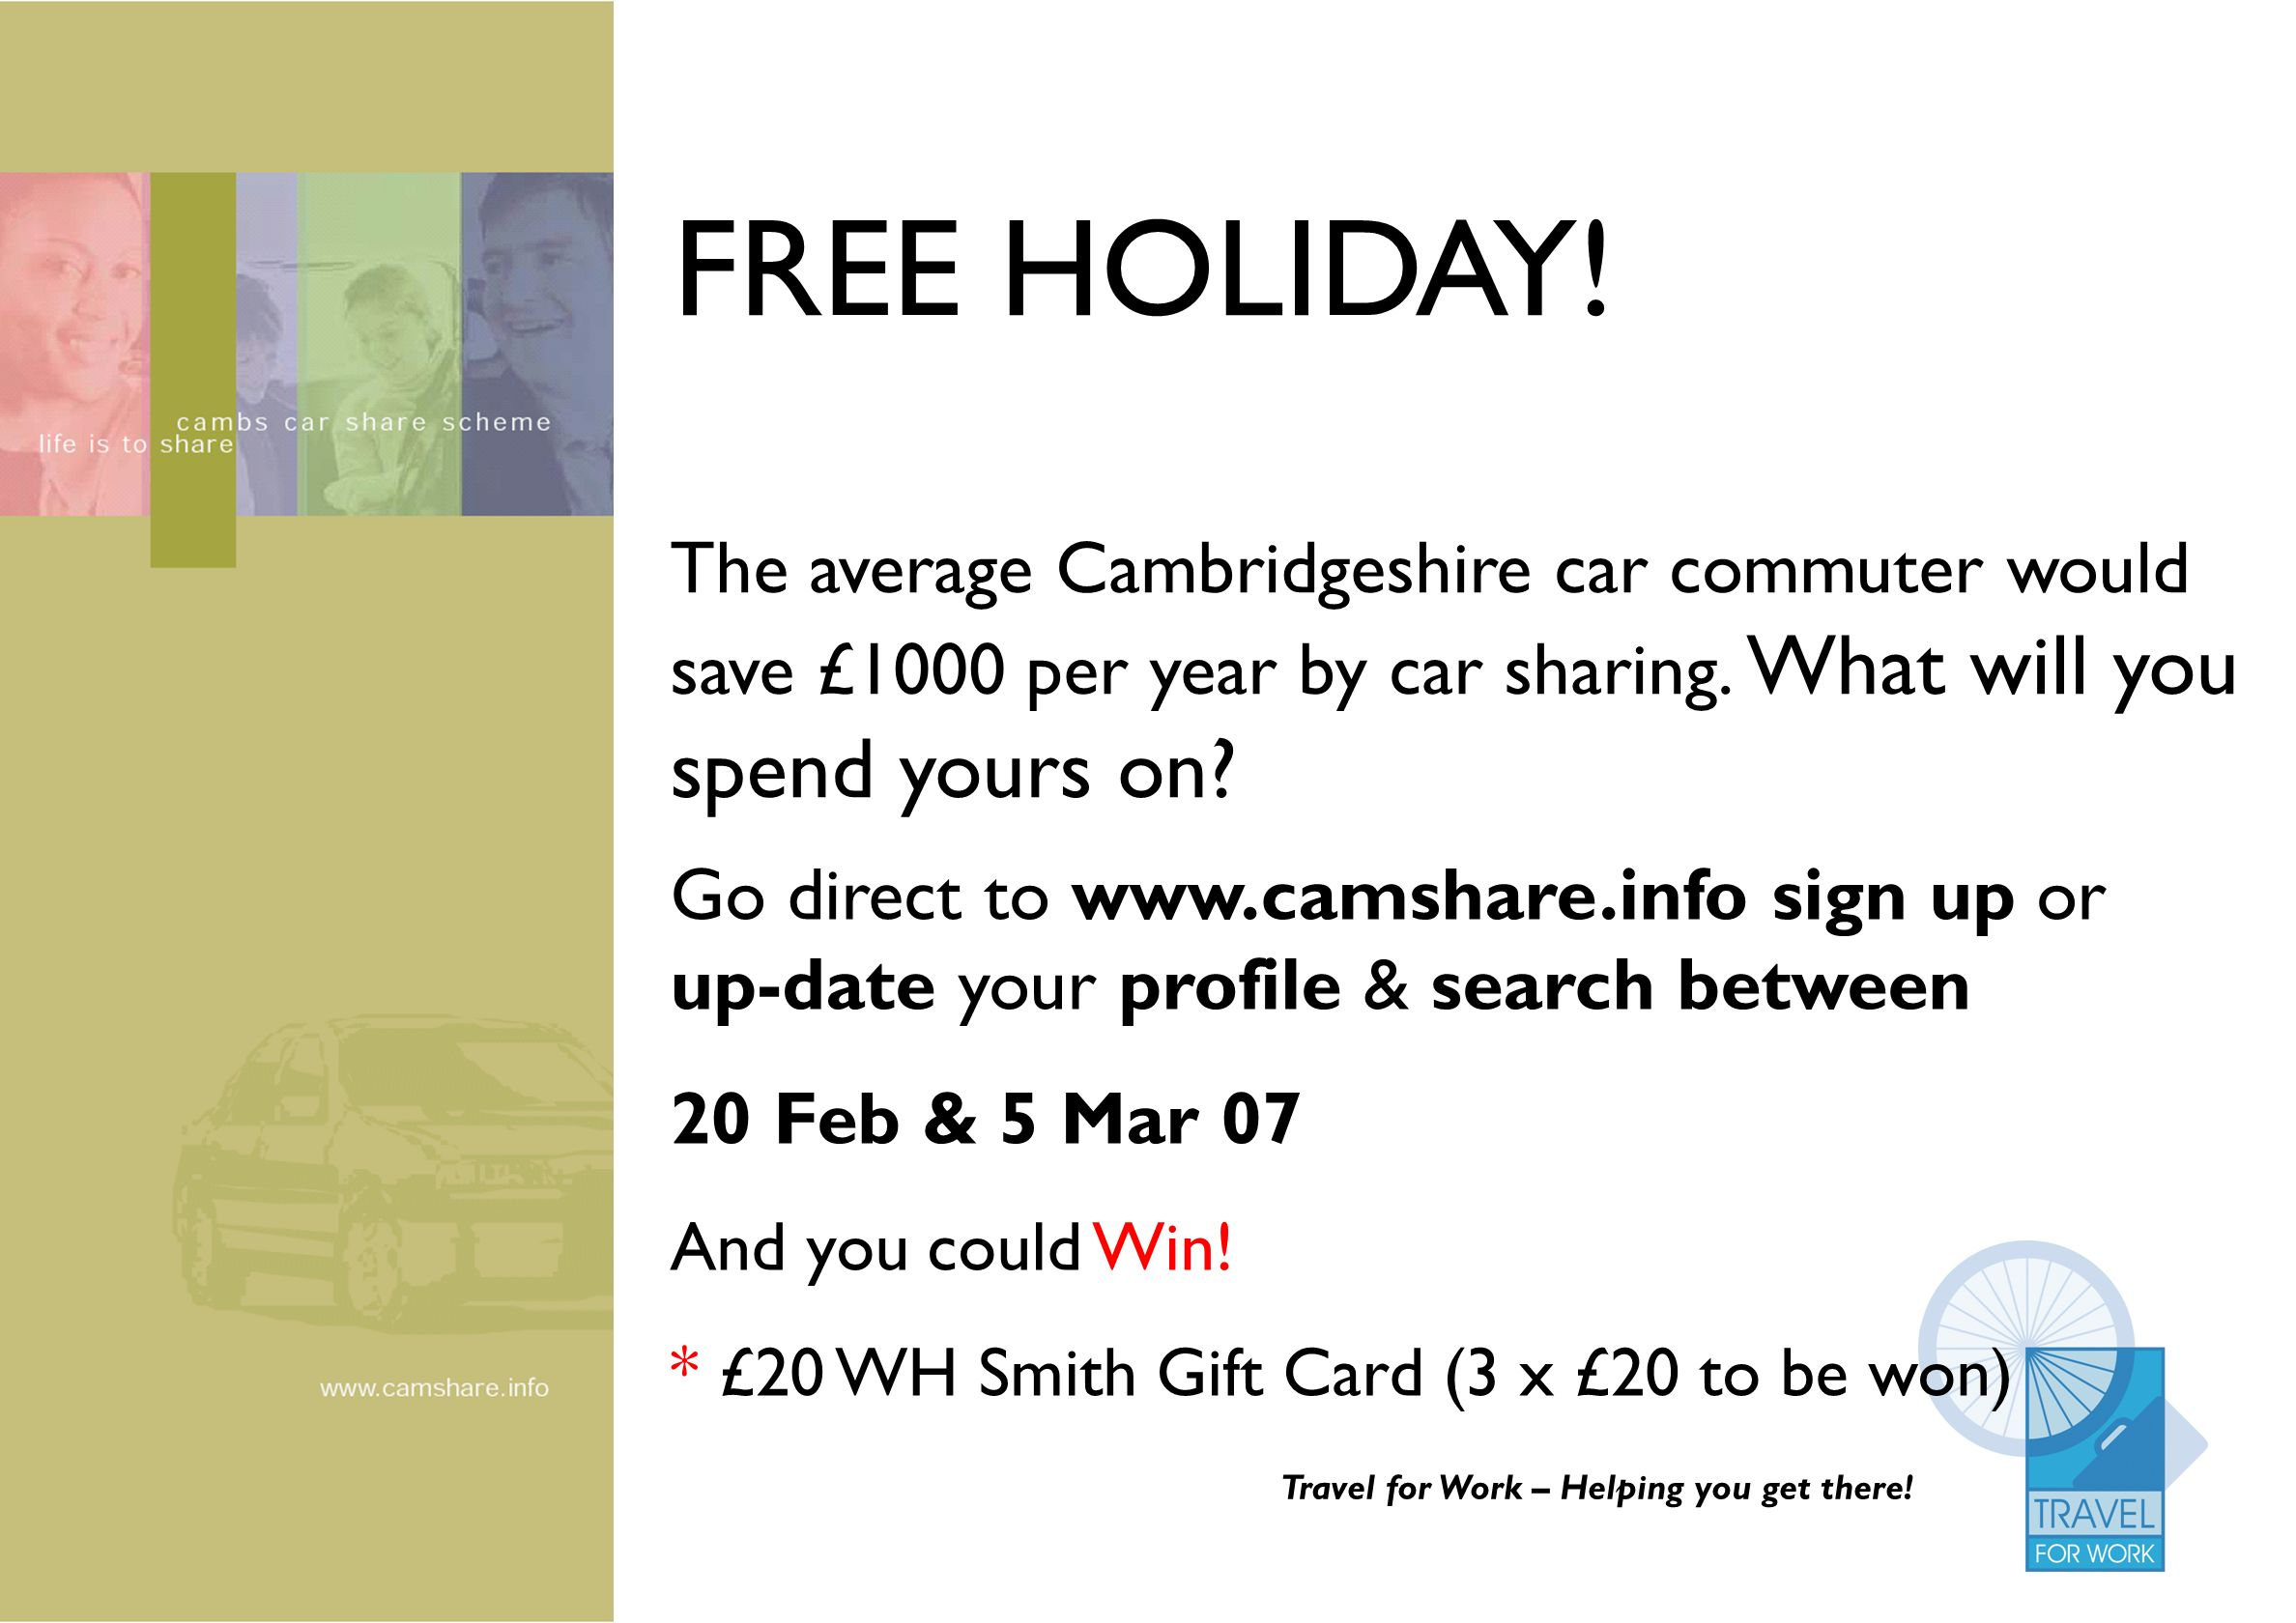 FREE HOLIDAY! The average Cambridgeshire car commuter would save £1000 per year by car sharing. What will you spend yours on? Travel for Work – Helpin